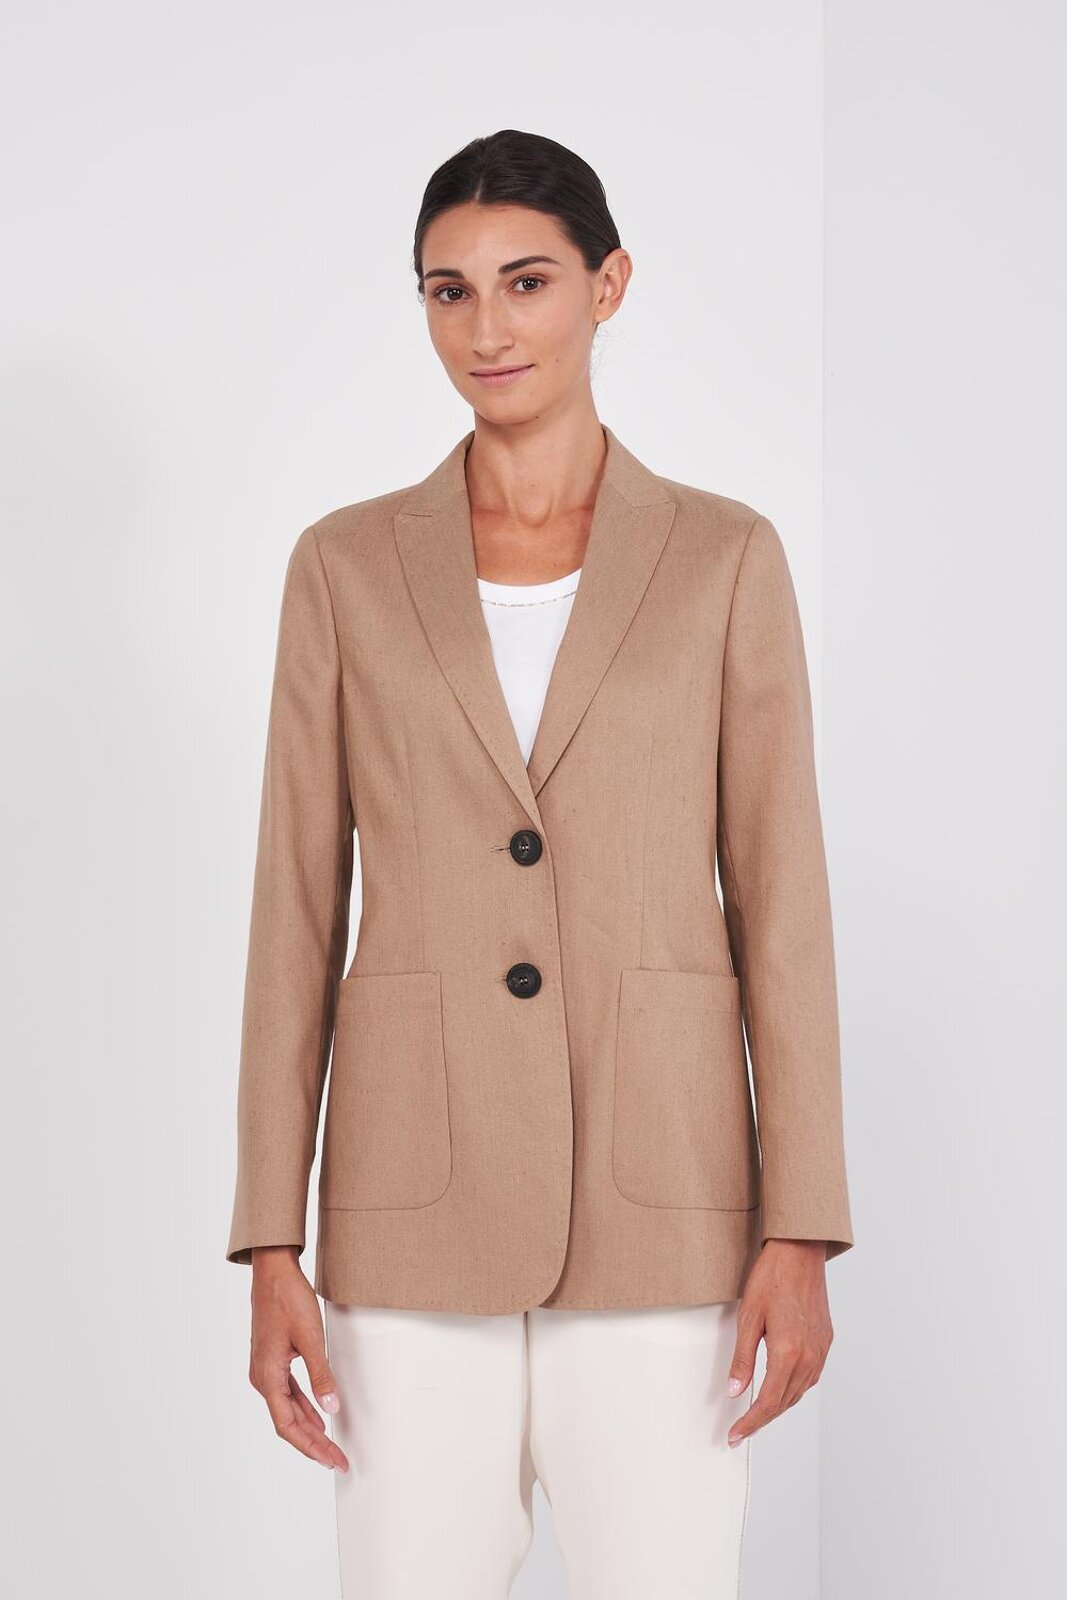 Long Sleeve Structured Blazer Jacket In Linen Blend Fabric. Two Front Buttons, Side Pockets, Leather Detail On The Sleeve. Regular fit. - Peserico